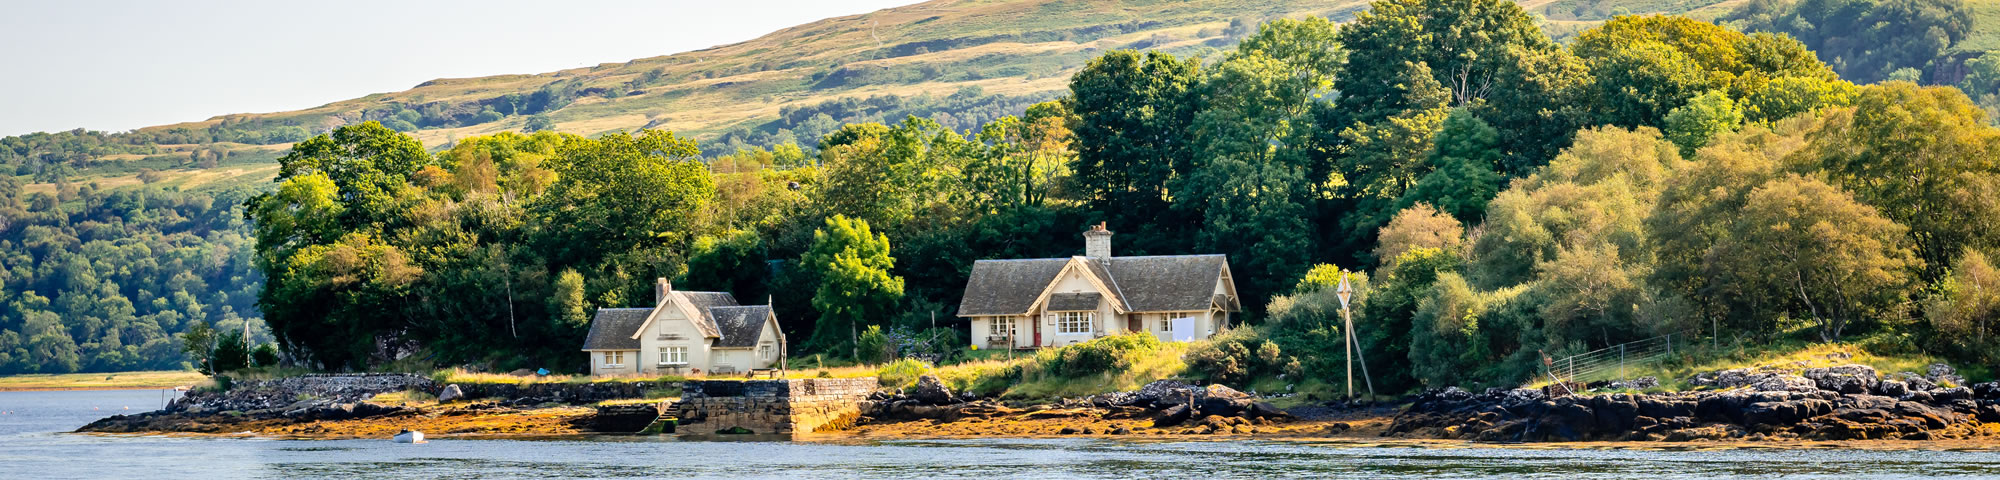 Two cottages at the mouth of Loch Aline near Morvern